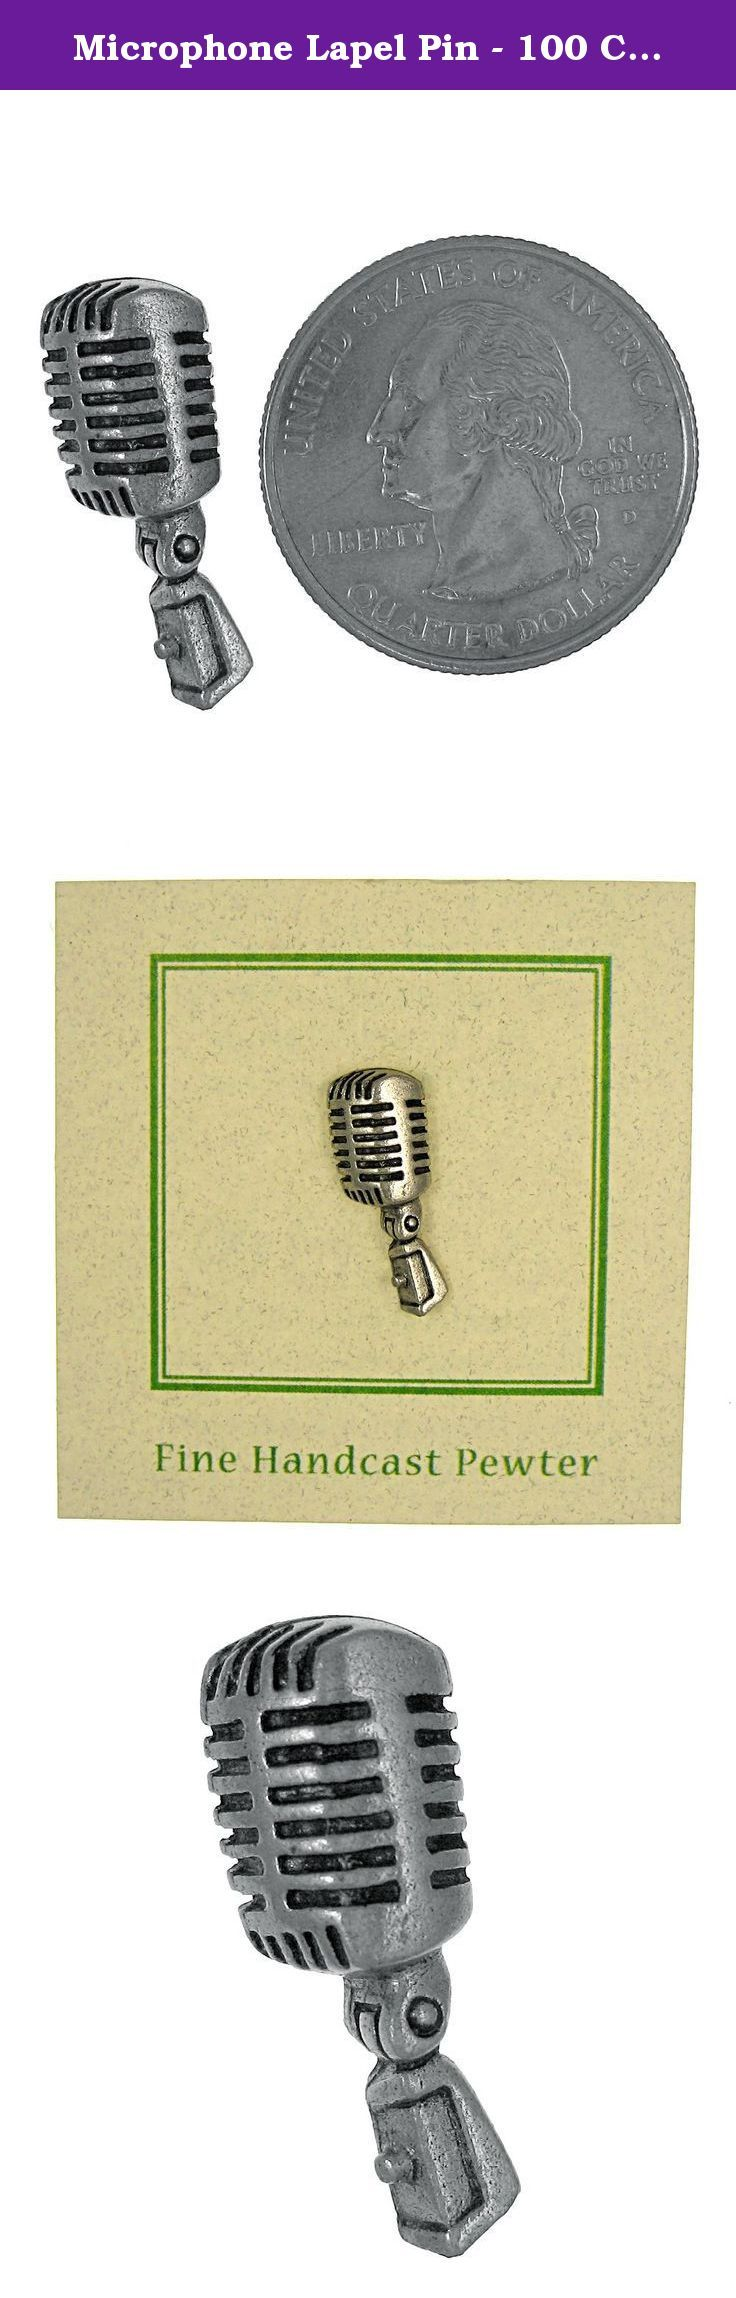 Microphone Lapel Pin - 100 Count. A microphone is a device for converting acoustic power into electric power that has essentially similar wave characteristics. Be heard with our microphone lapel pin. Handcast in solid, lead-free pewter, each of our pins is an original three dimensional sculpture signed by the artist, Jim Clift. Individually packaged on one of our signature presentation cards, our pins arrive ready for gift giving! Handcrafted in our studio in Coventry, RI, our pins are…